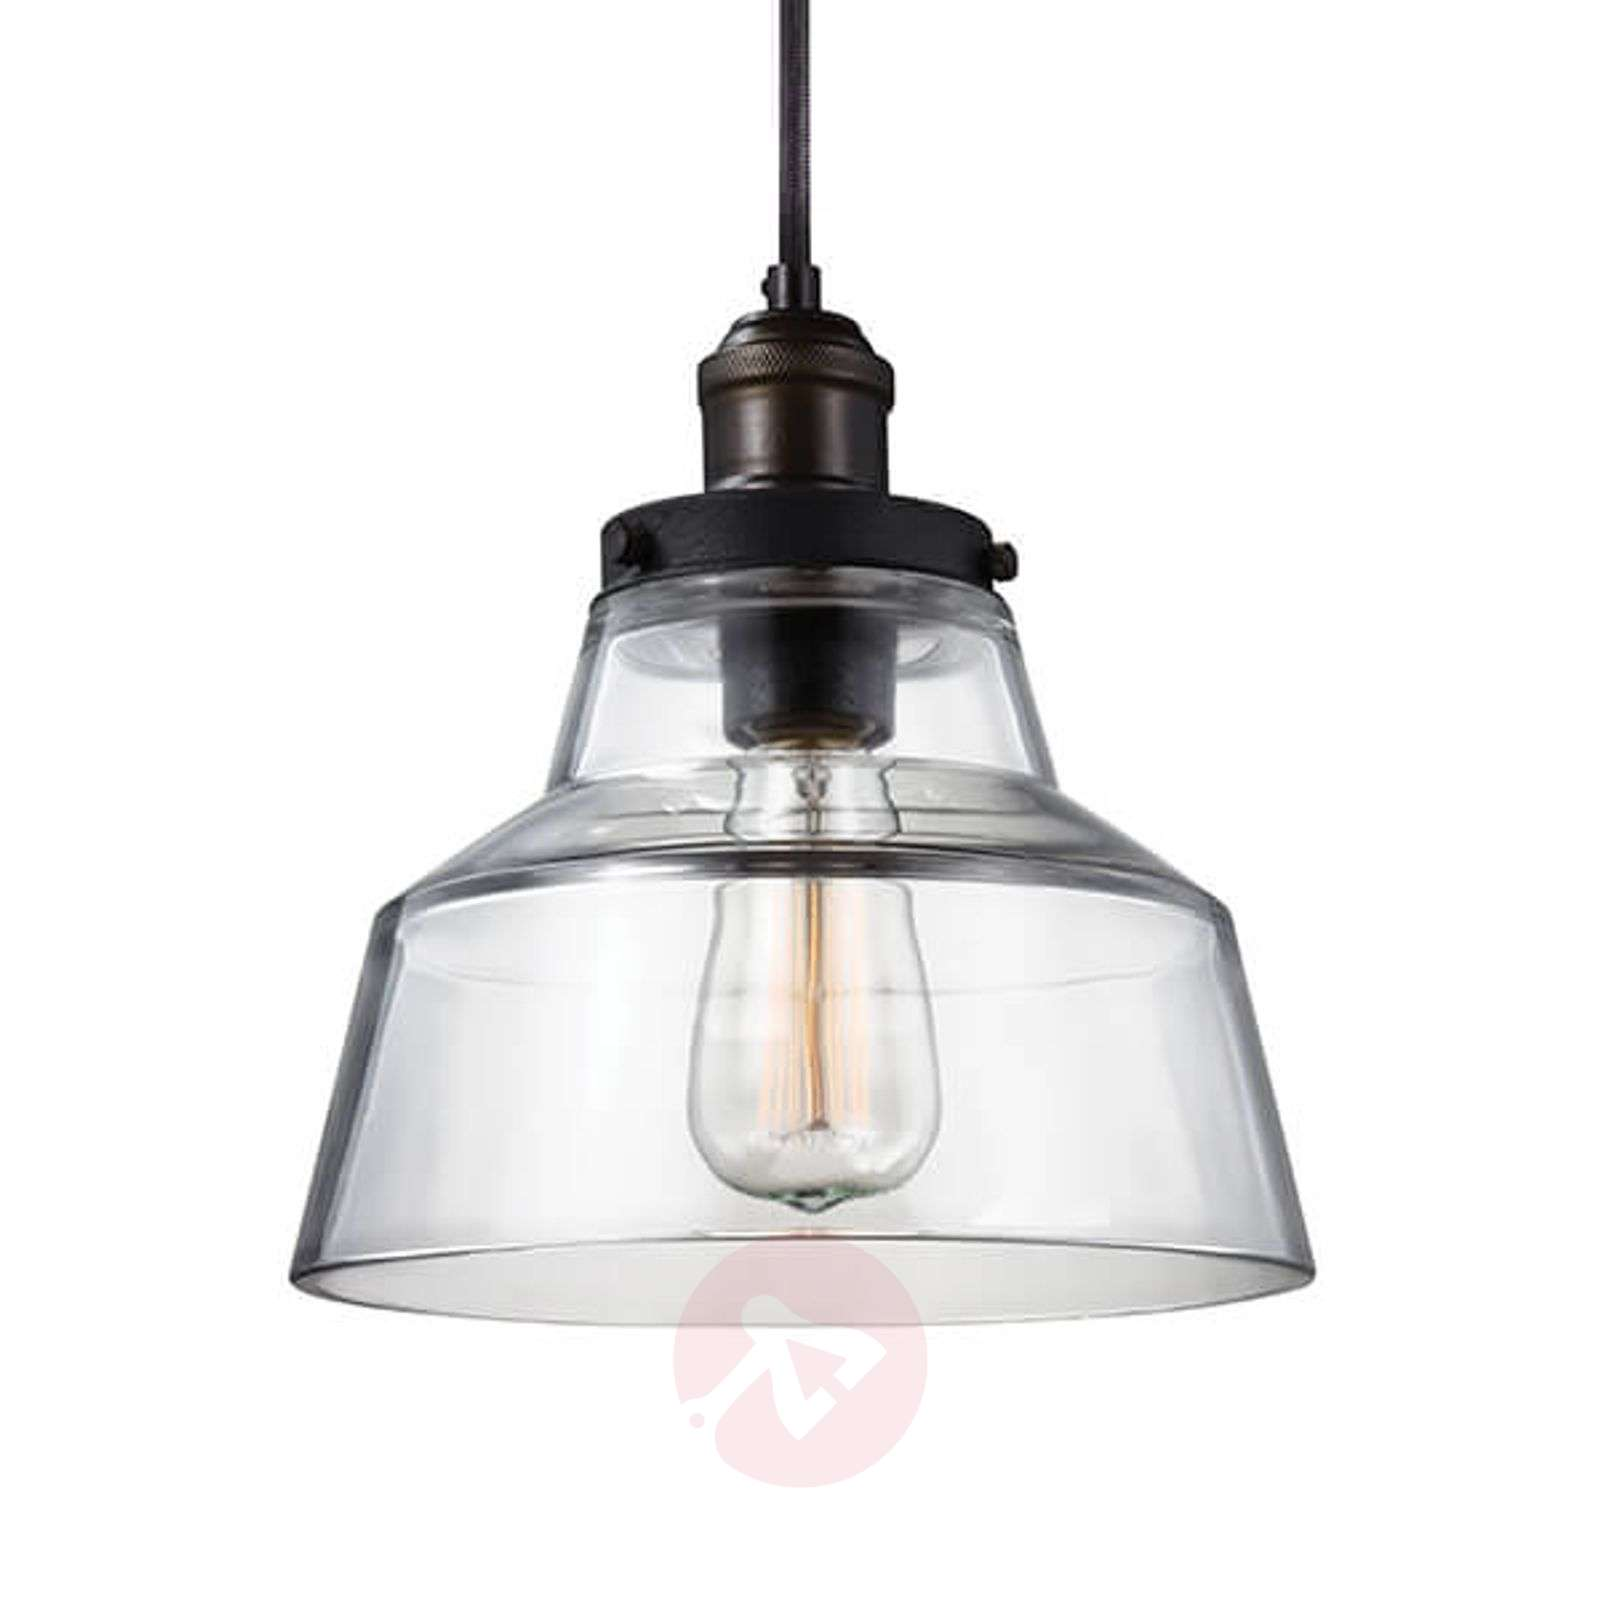 Ancien Suspension Zinc Laiton A Et Baskin Ee9IWD2HYb